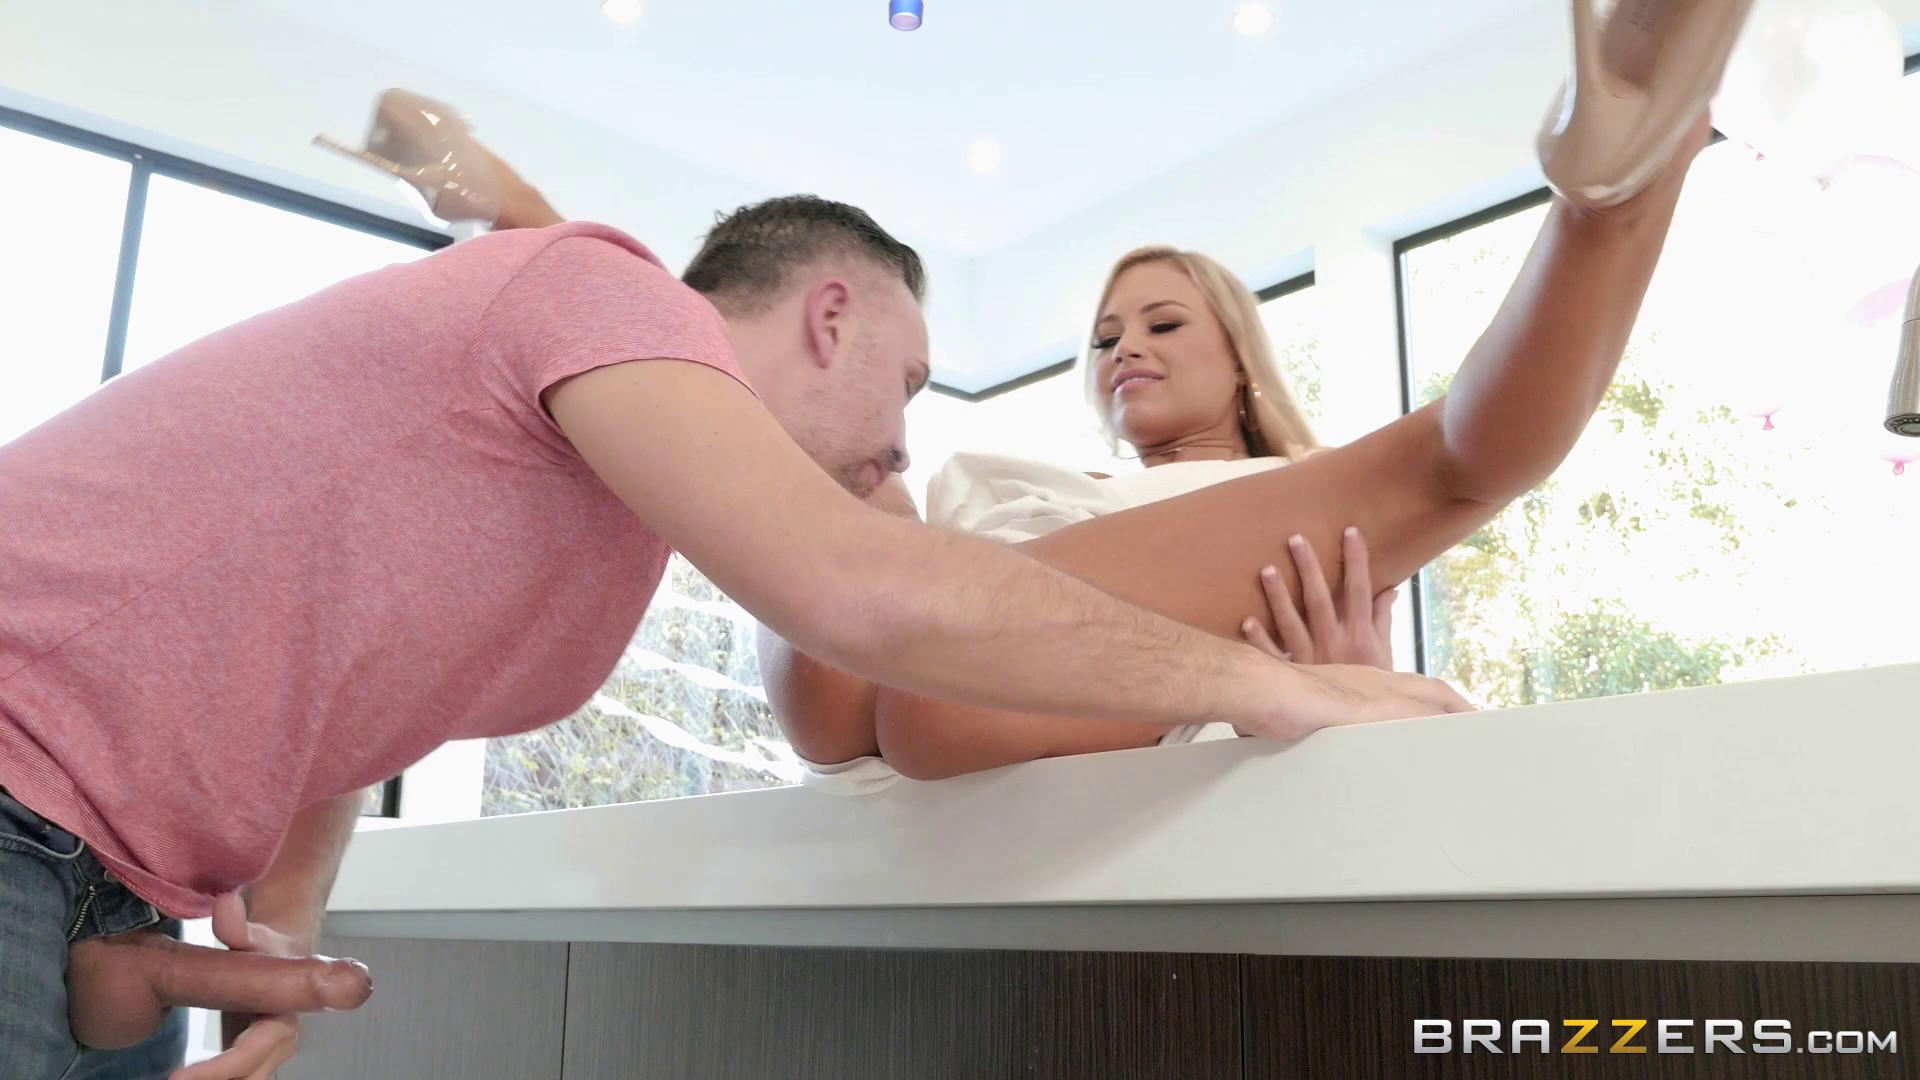 RealWifeStories – Kendall Kayden Busted At The Babyshower